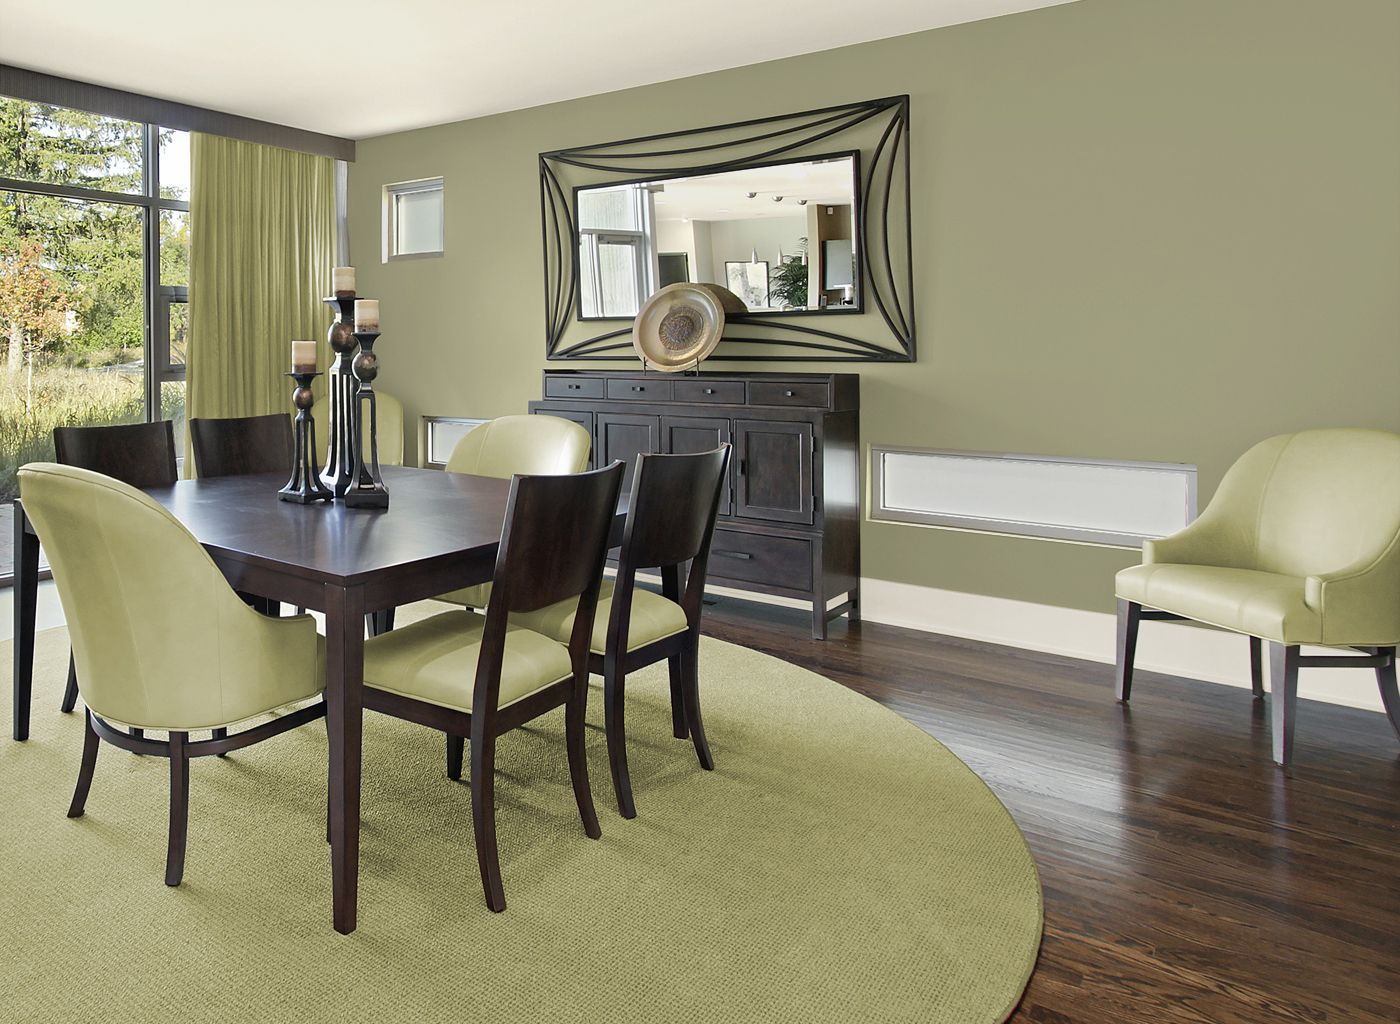 Dining Room in Artichoke Leaf   Dining Rooms   Rooms By Color. Dining Room in Artichoke Leaf   Dining Rooms   Rooms By Color